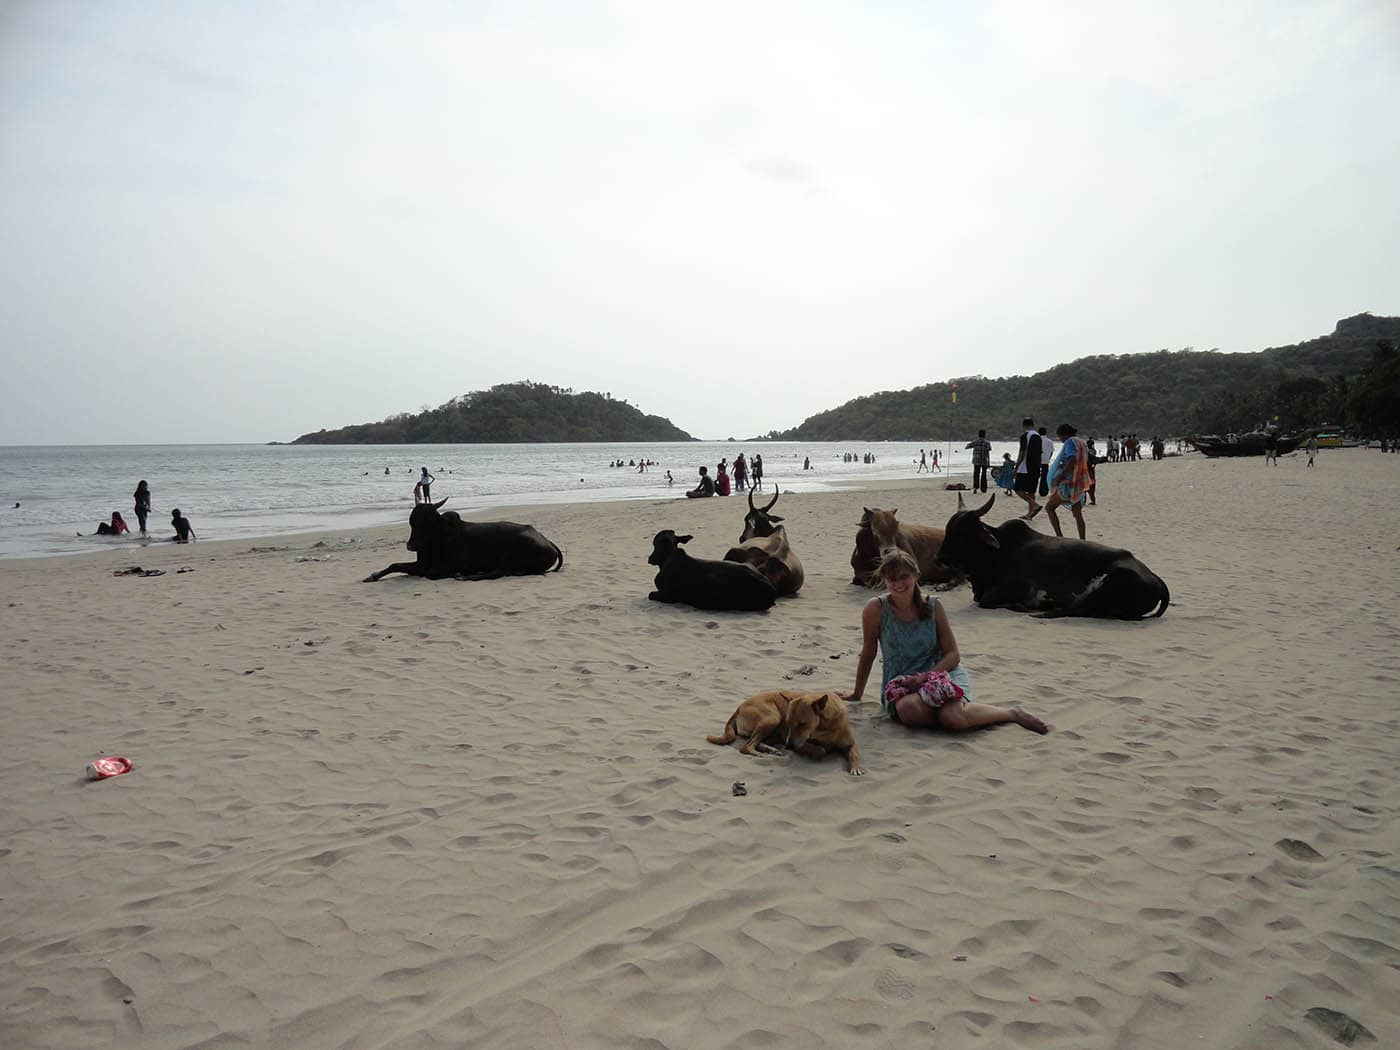 Sitting with dogs and cows on the beach in Palolem, Goa, India.